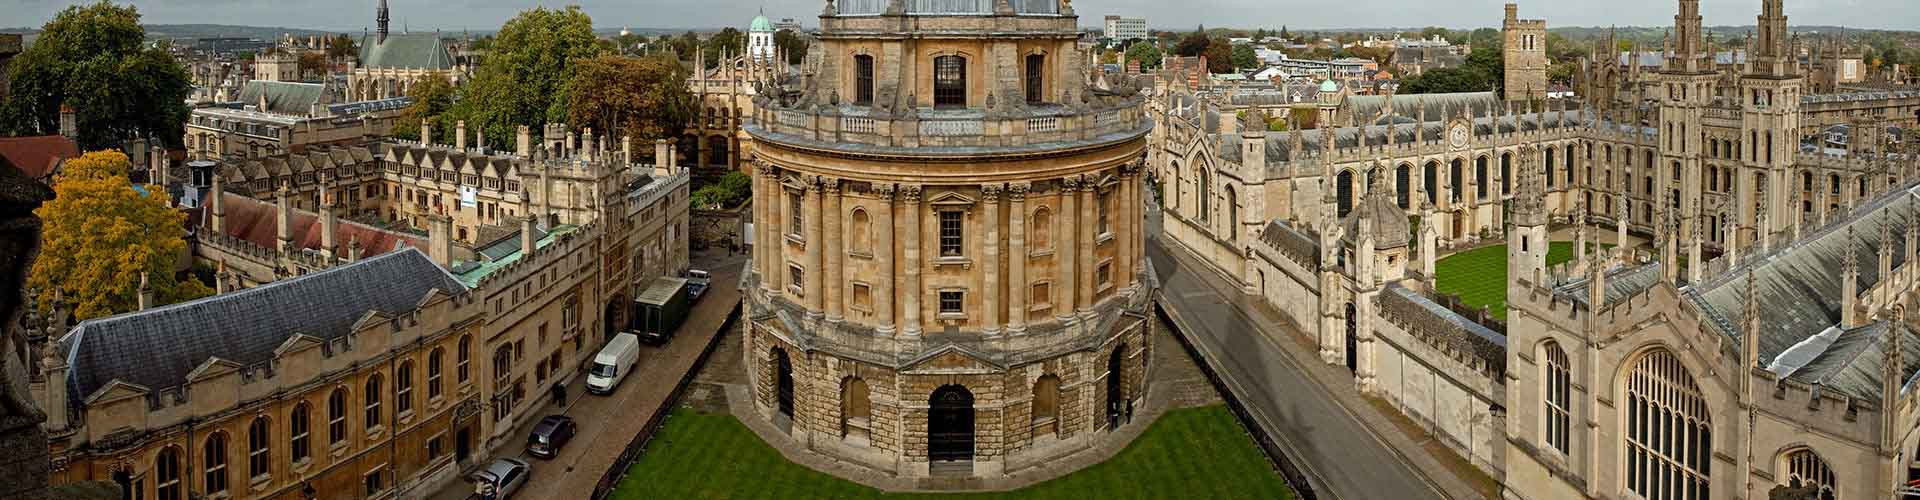 Oxford – Hostels in Oxford. Maps for Oxford, Photos and Reviews for each hostel in Oxford.